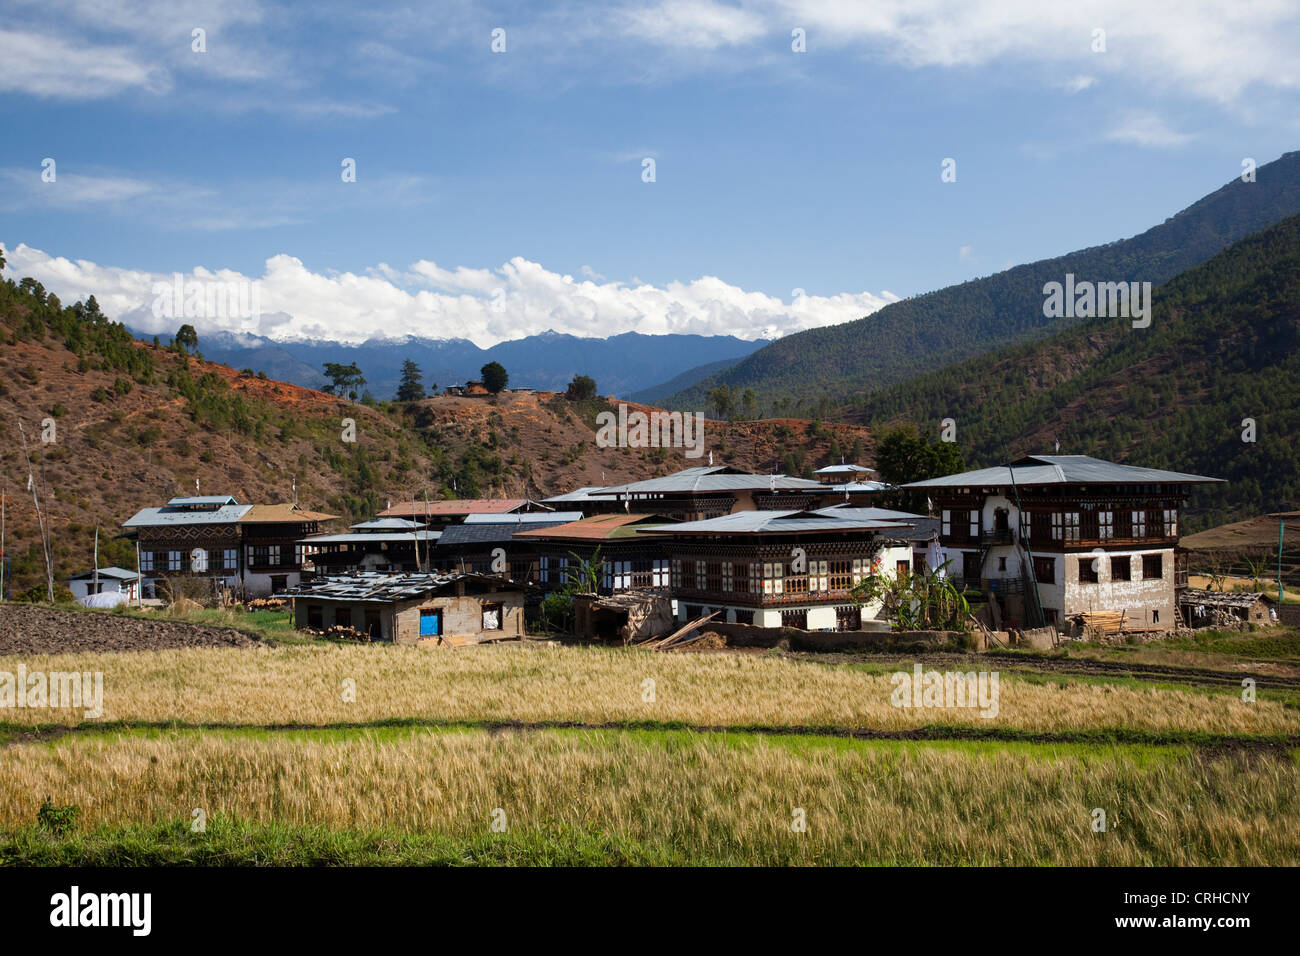 Morning sun on a a village in Punakha District, Bhutan near Chimi Lhakhang. - Stock Image